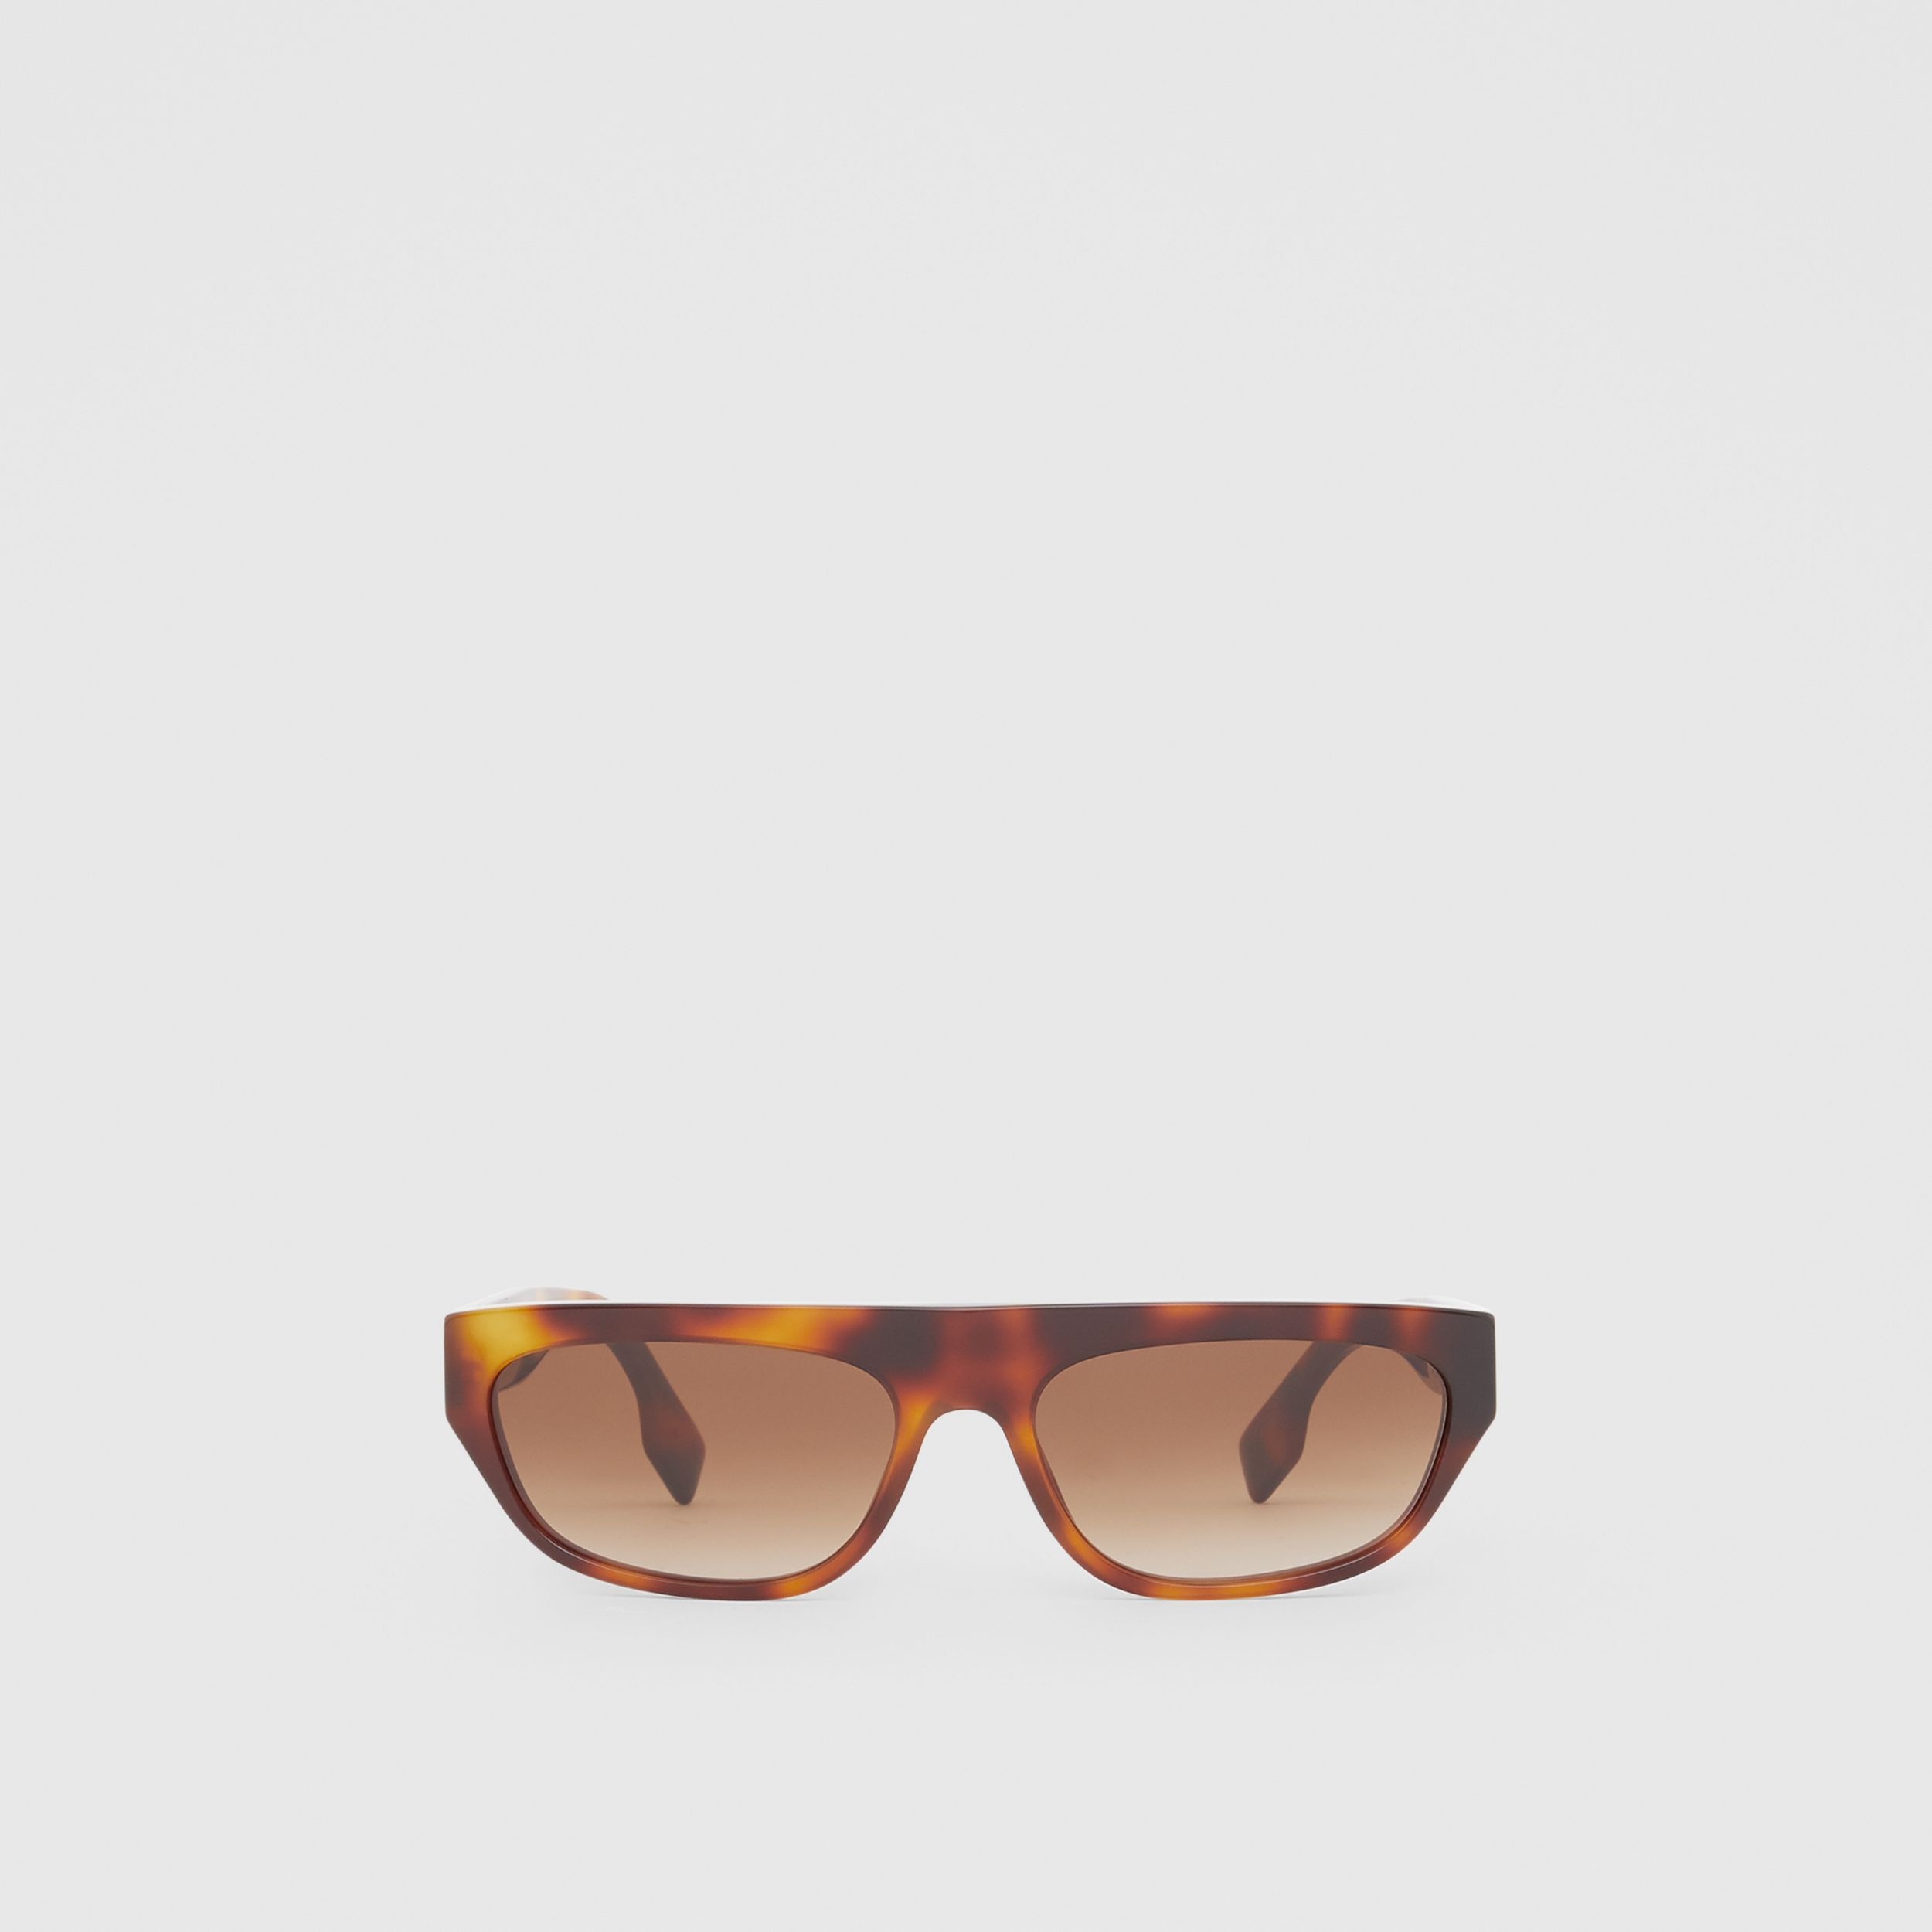 Monogram Motif Rectangular Frame Sunglasses in Amber Tortoiseshell | Burberry - 1